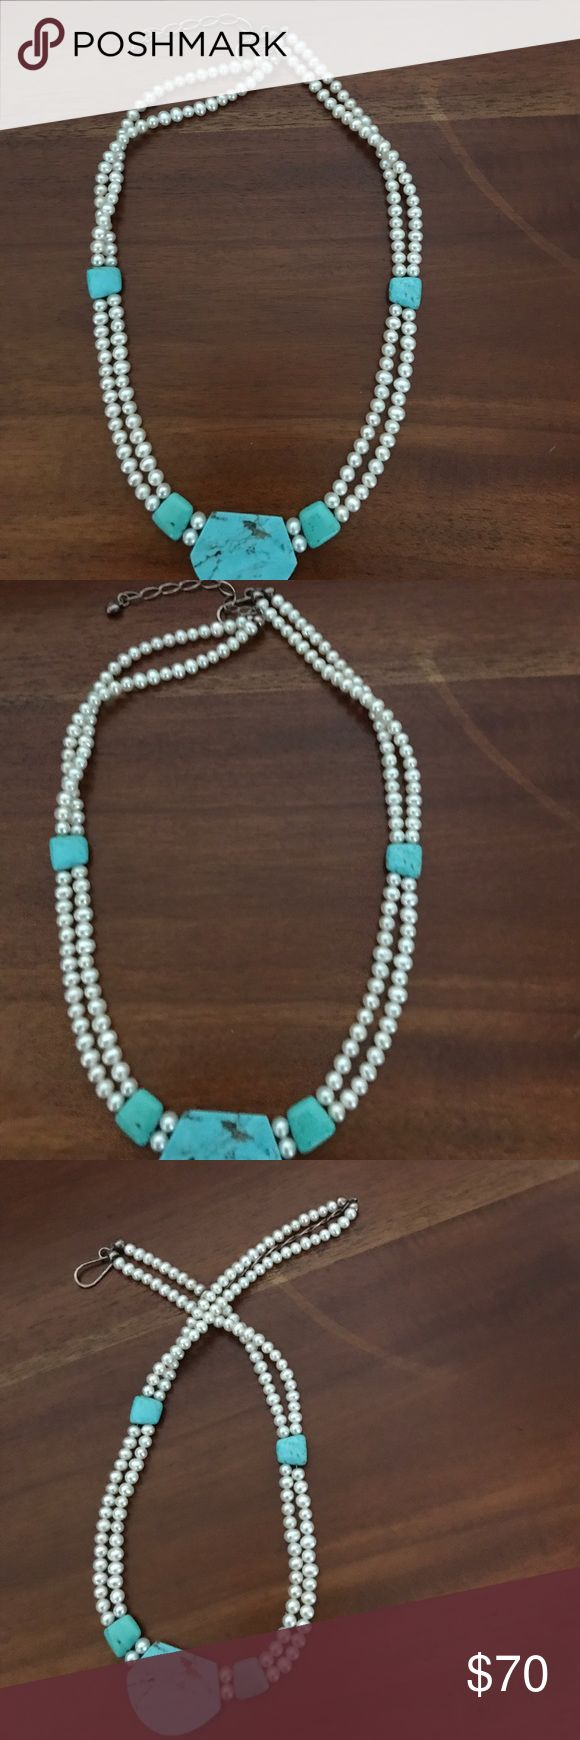 Pearl Teal necklace Brand new without tag. Pearl teal necklace. Very popular!! I had a couple of them. They sold out very quickly. Very rare piece boutique Jewelry Necklaces